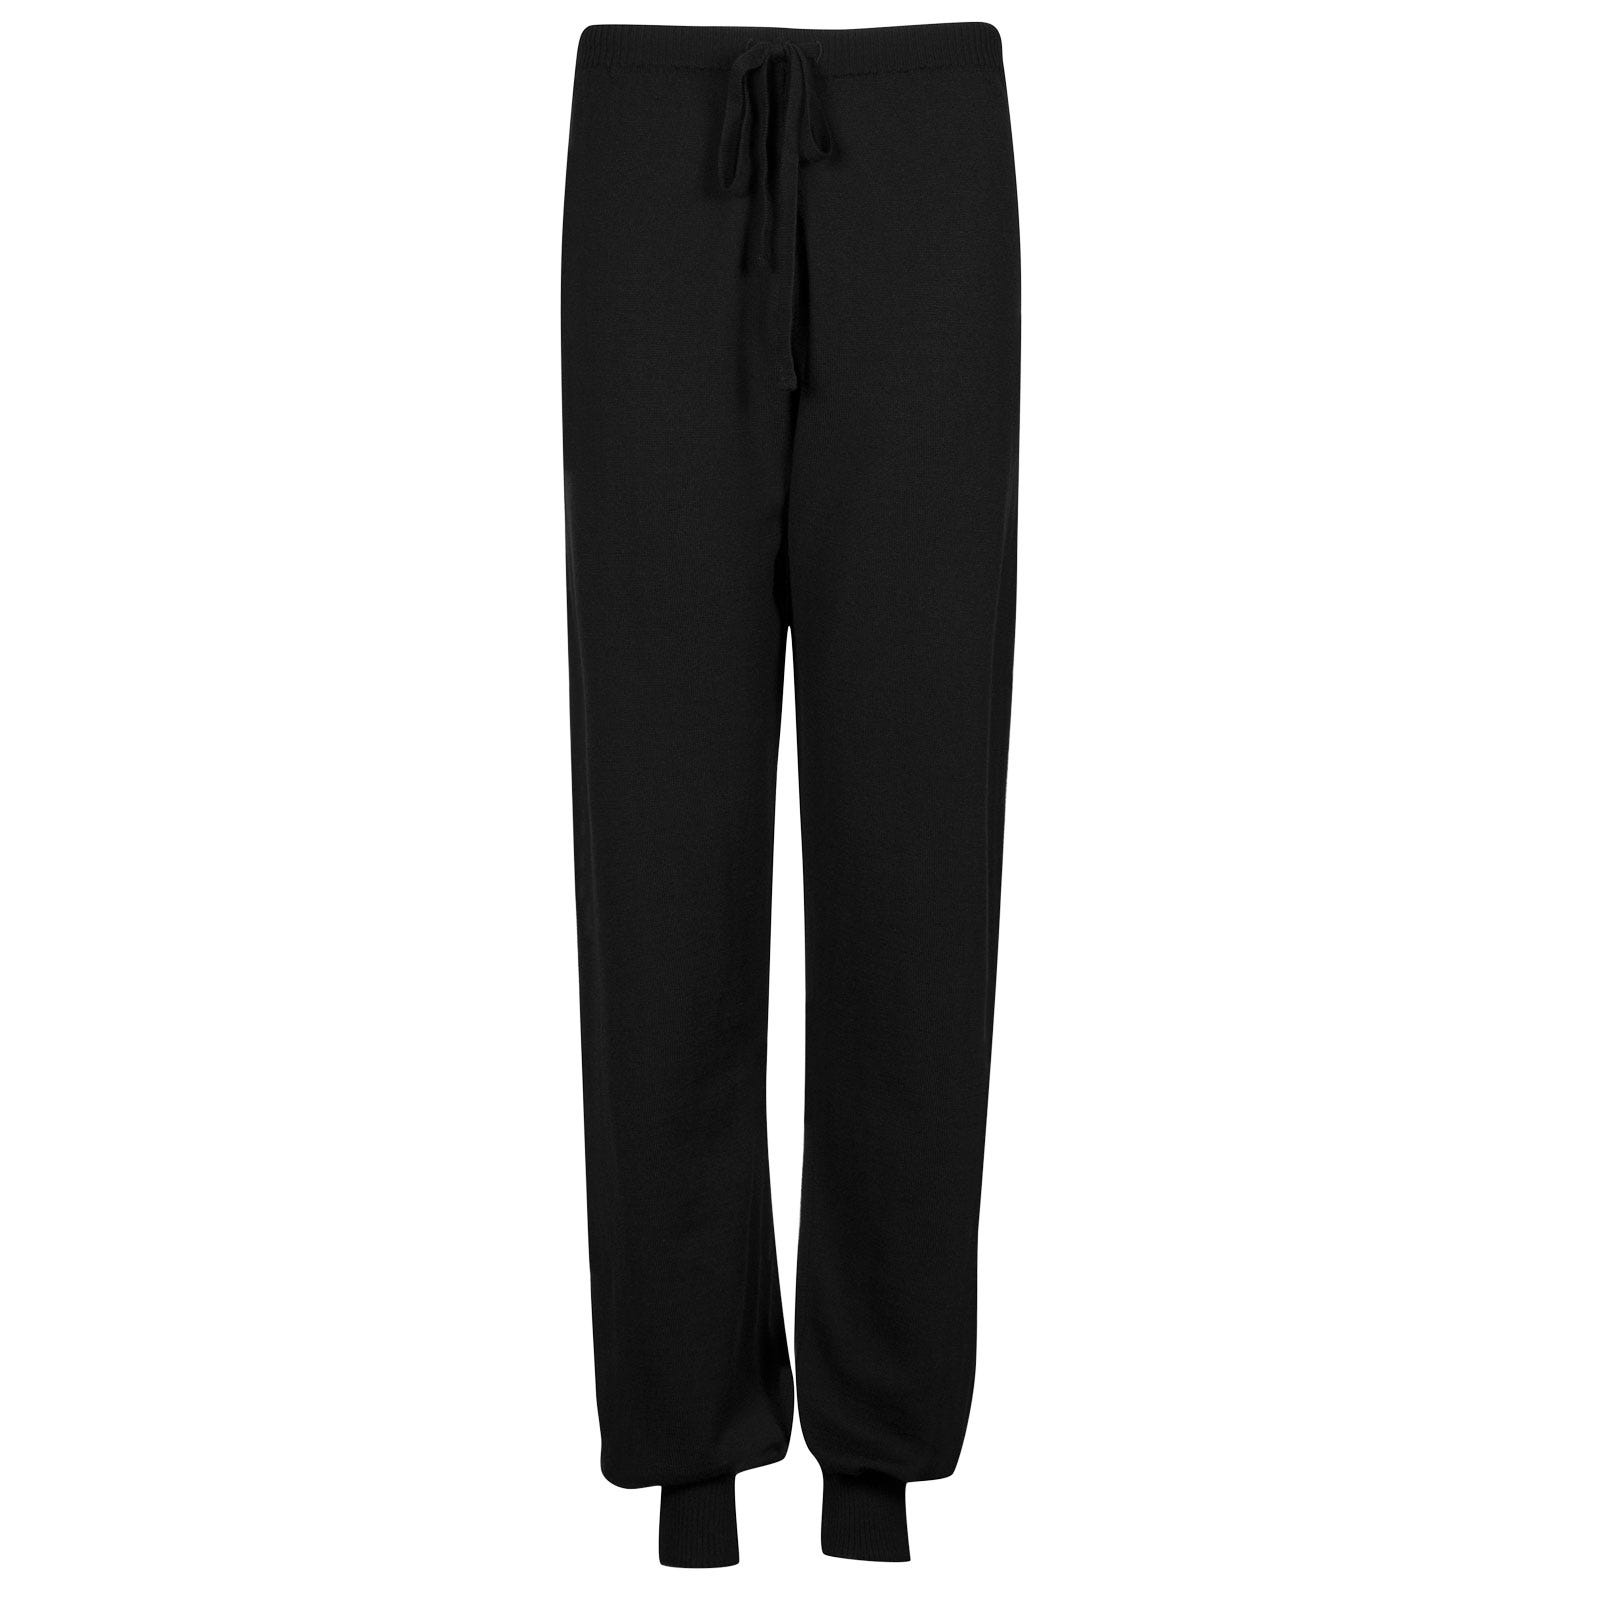 John Smedley Lock Merino Wool Trouser in Black-S